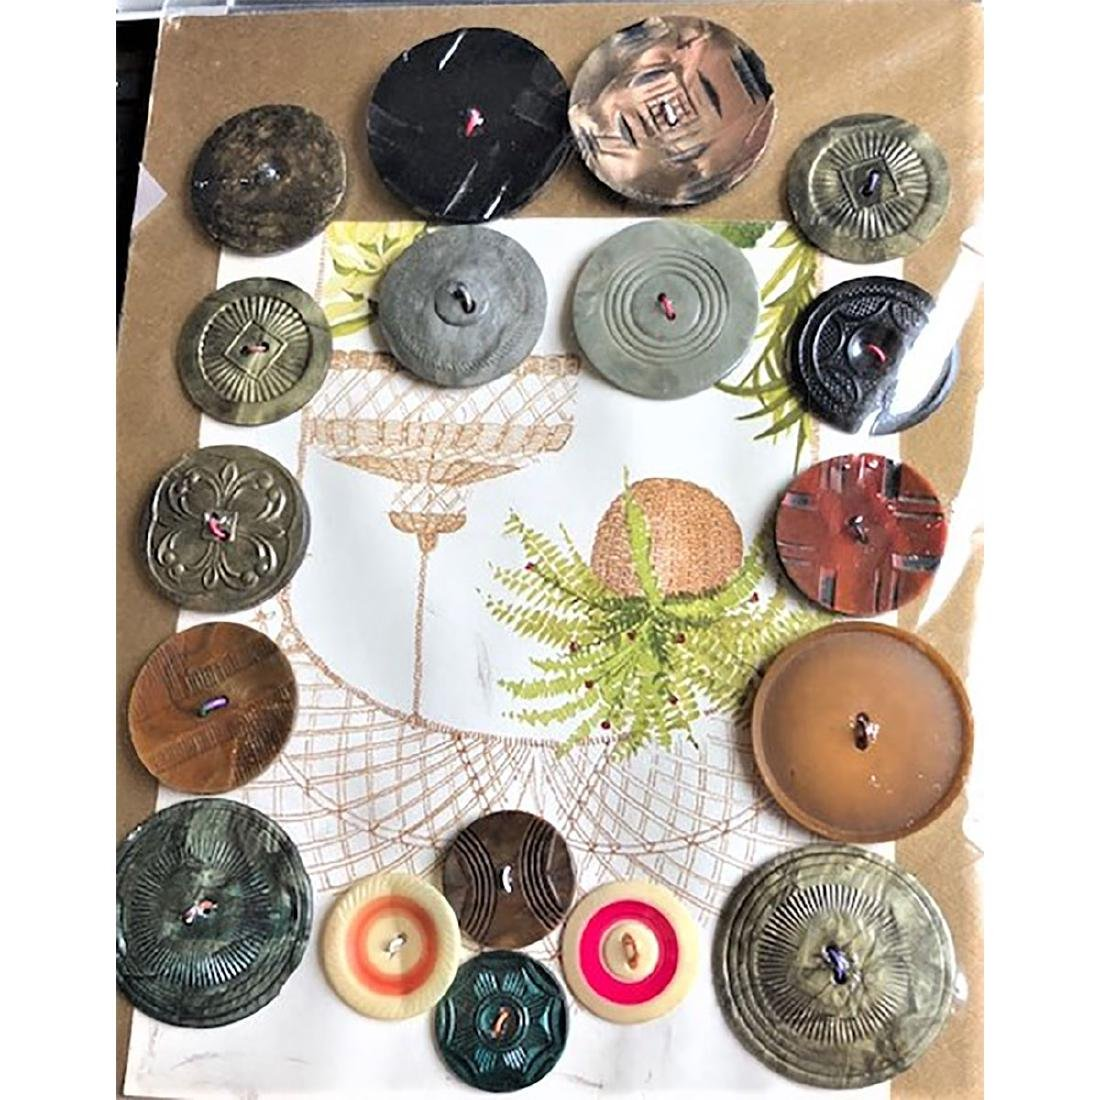 5 CARDS OF CELLULOID BUTTONS INCL COOKIES - 2